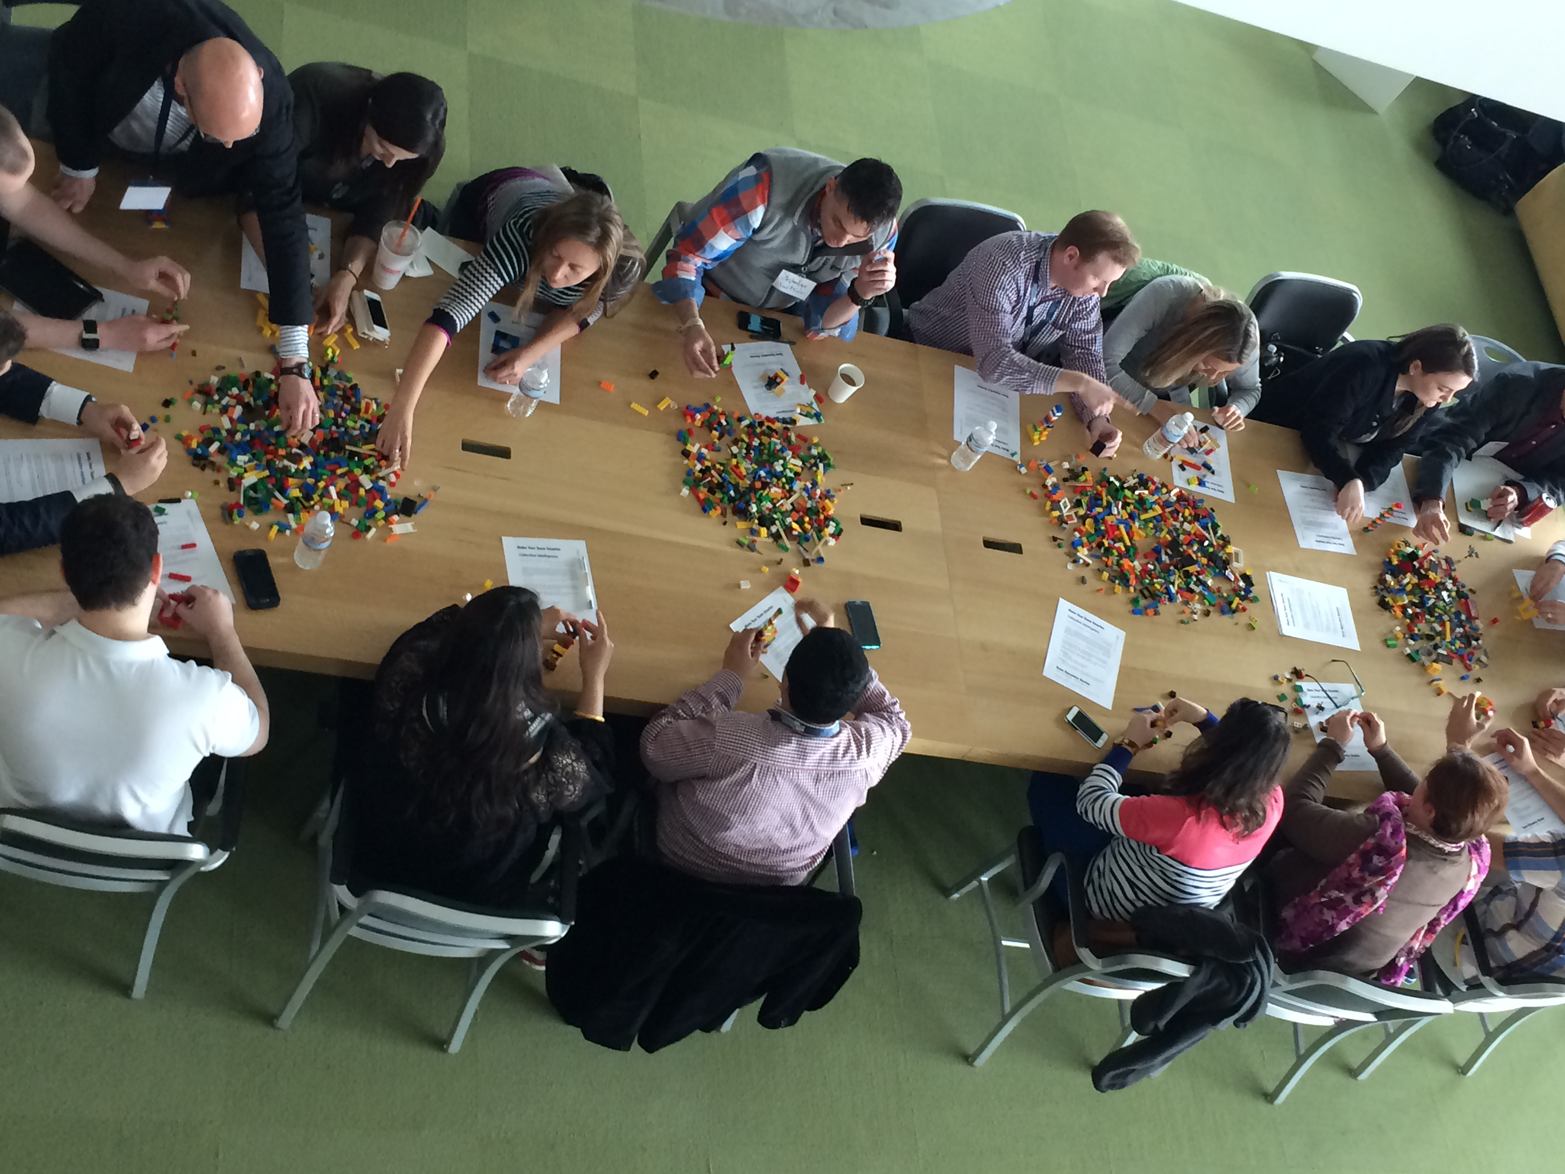 Lego Serious Play lean-in style of meeting